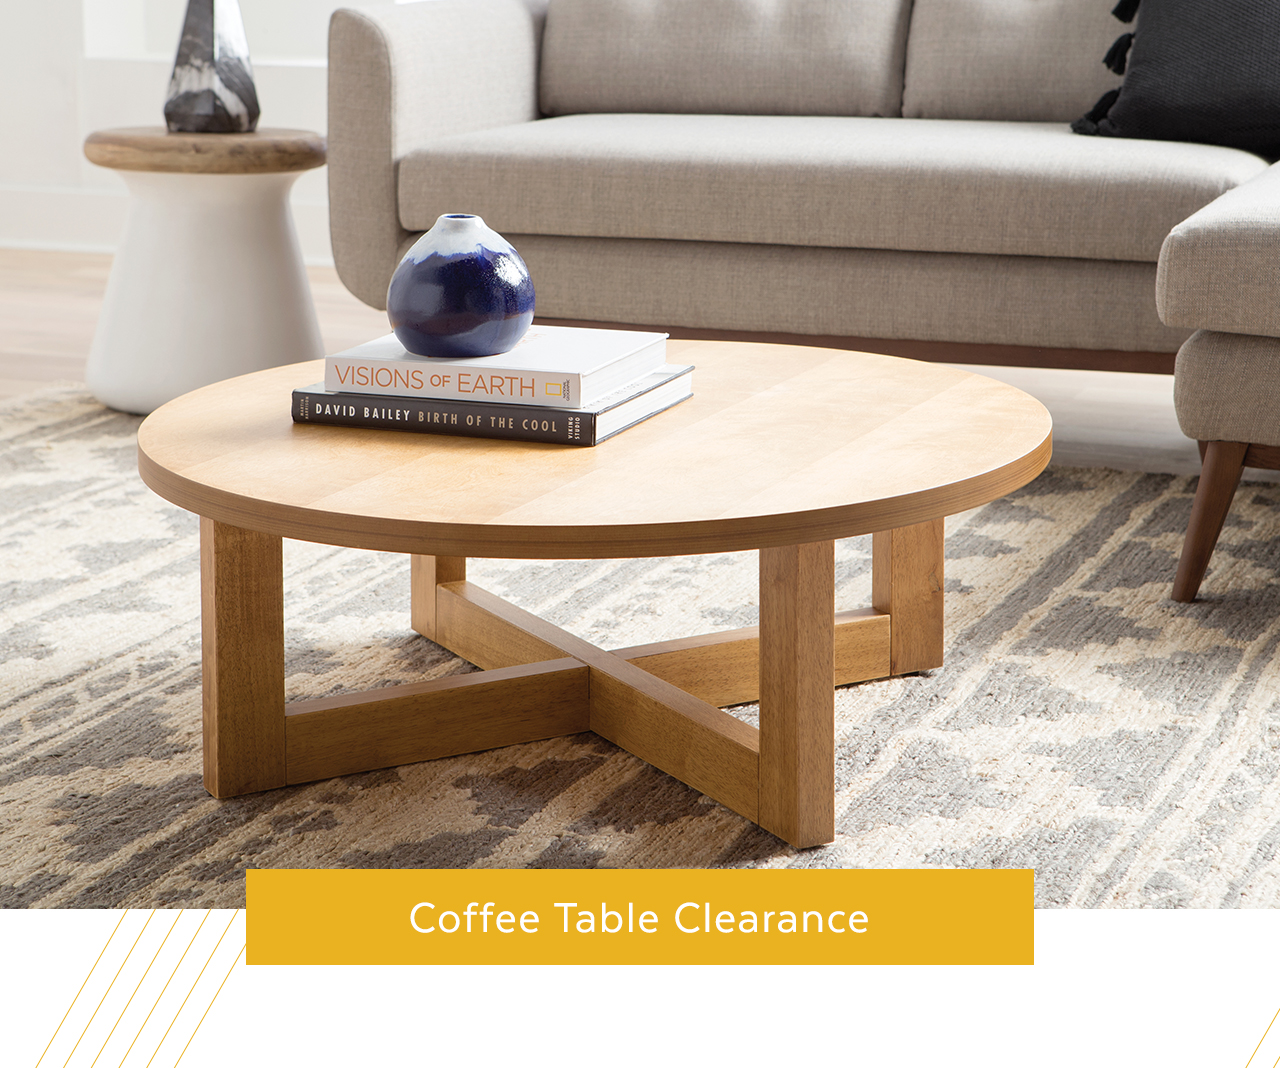 Coffee Table Clearance